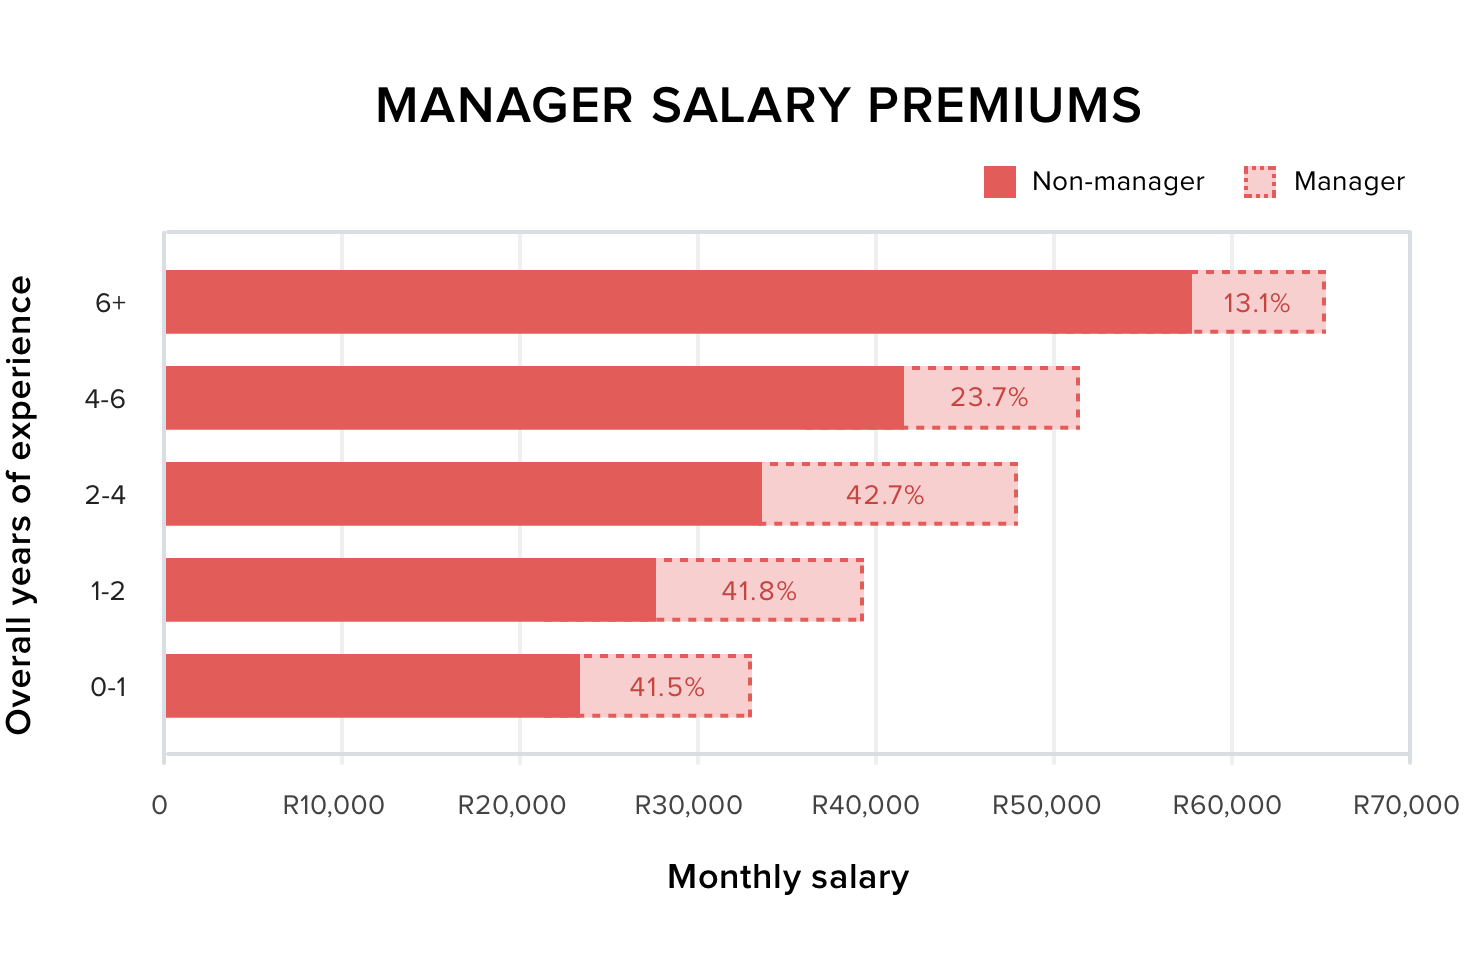 Manager Salary Premiums